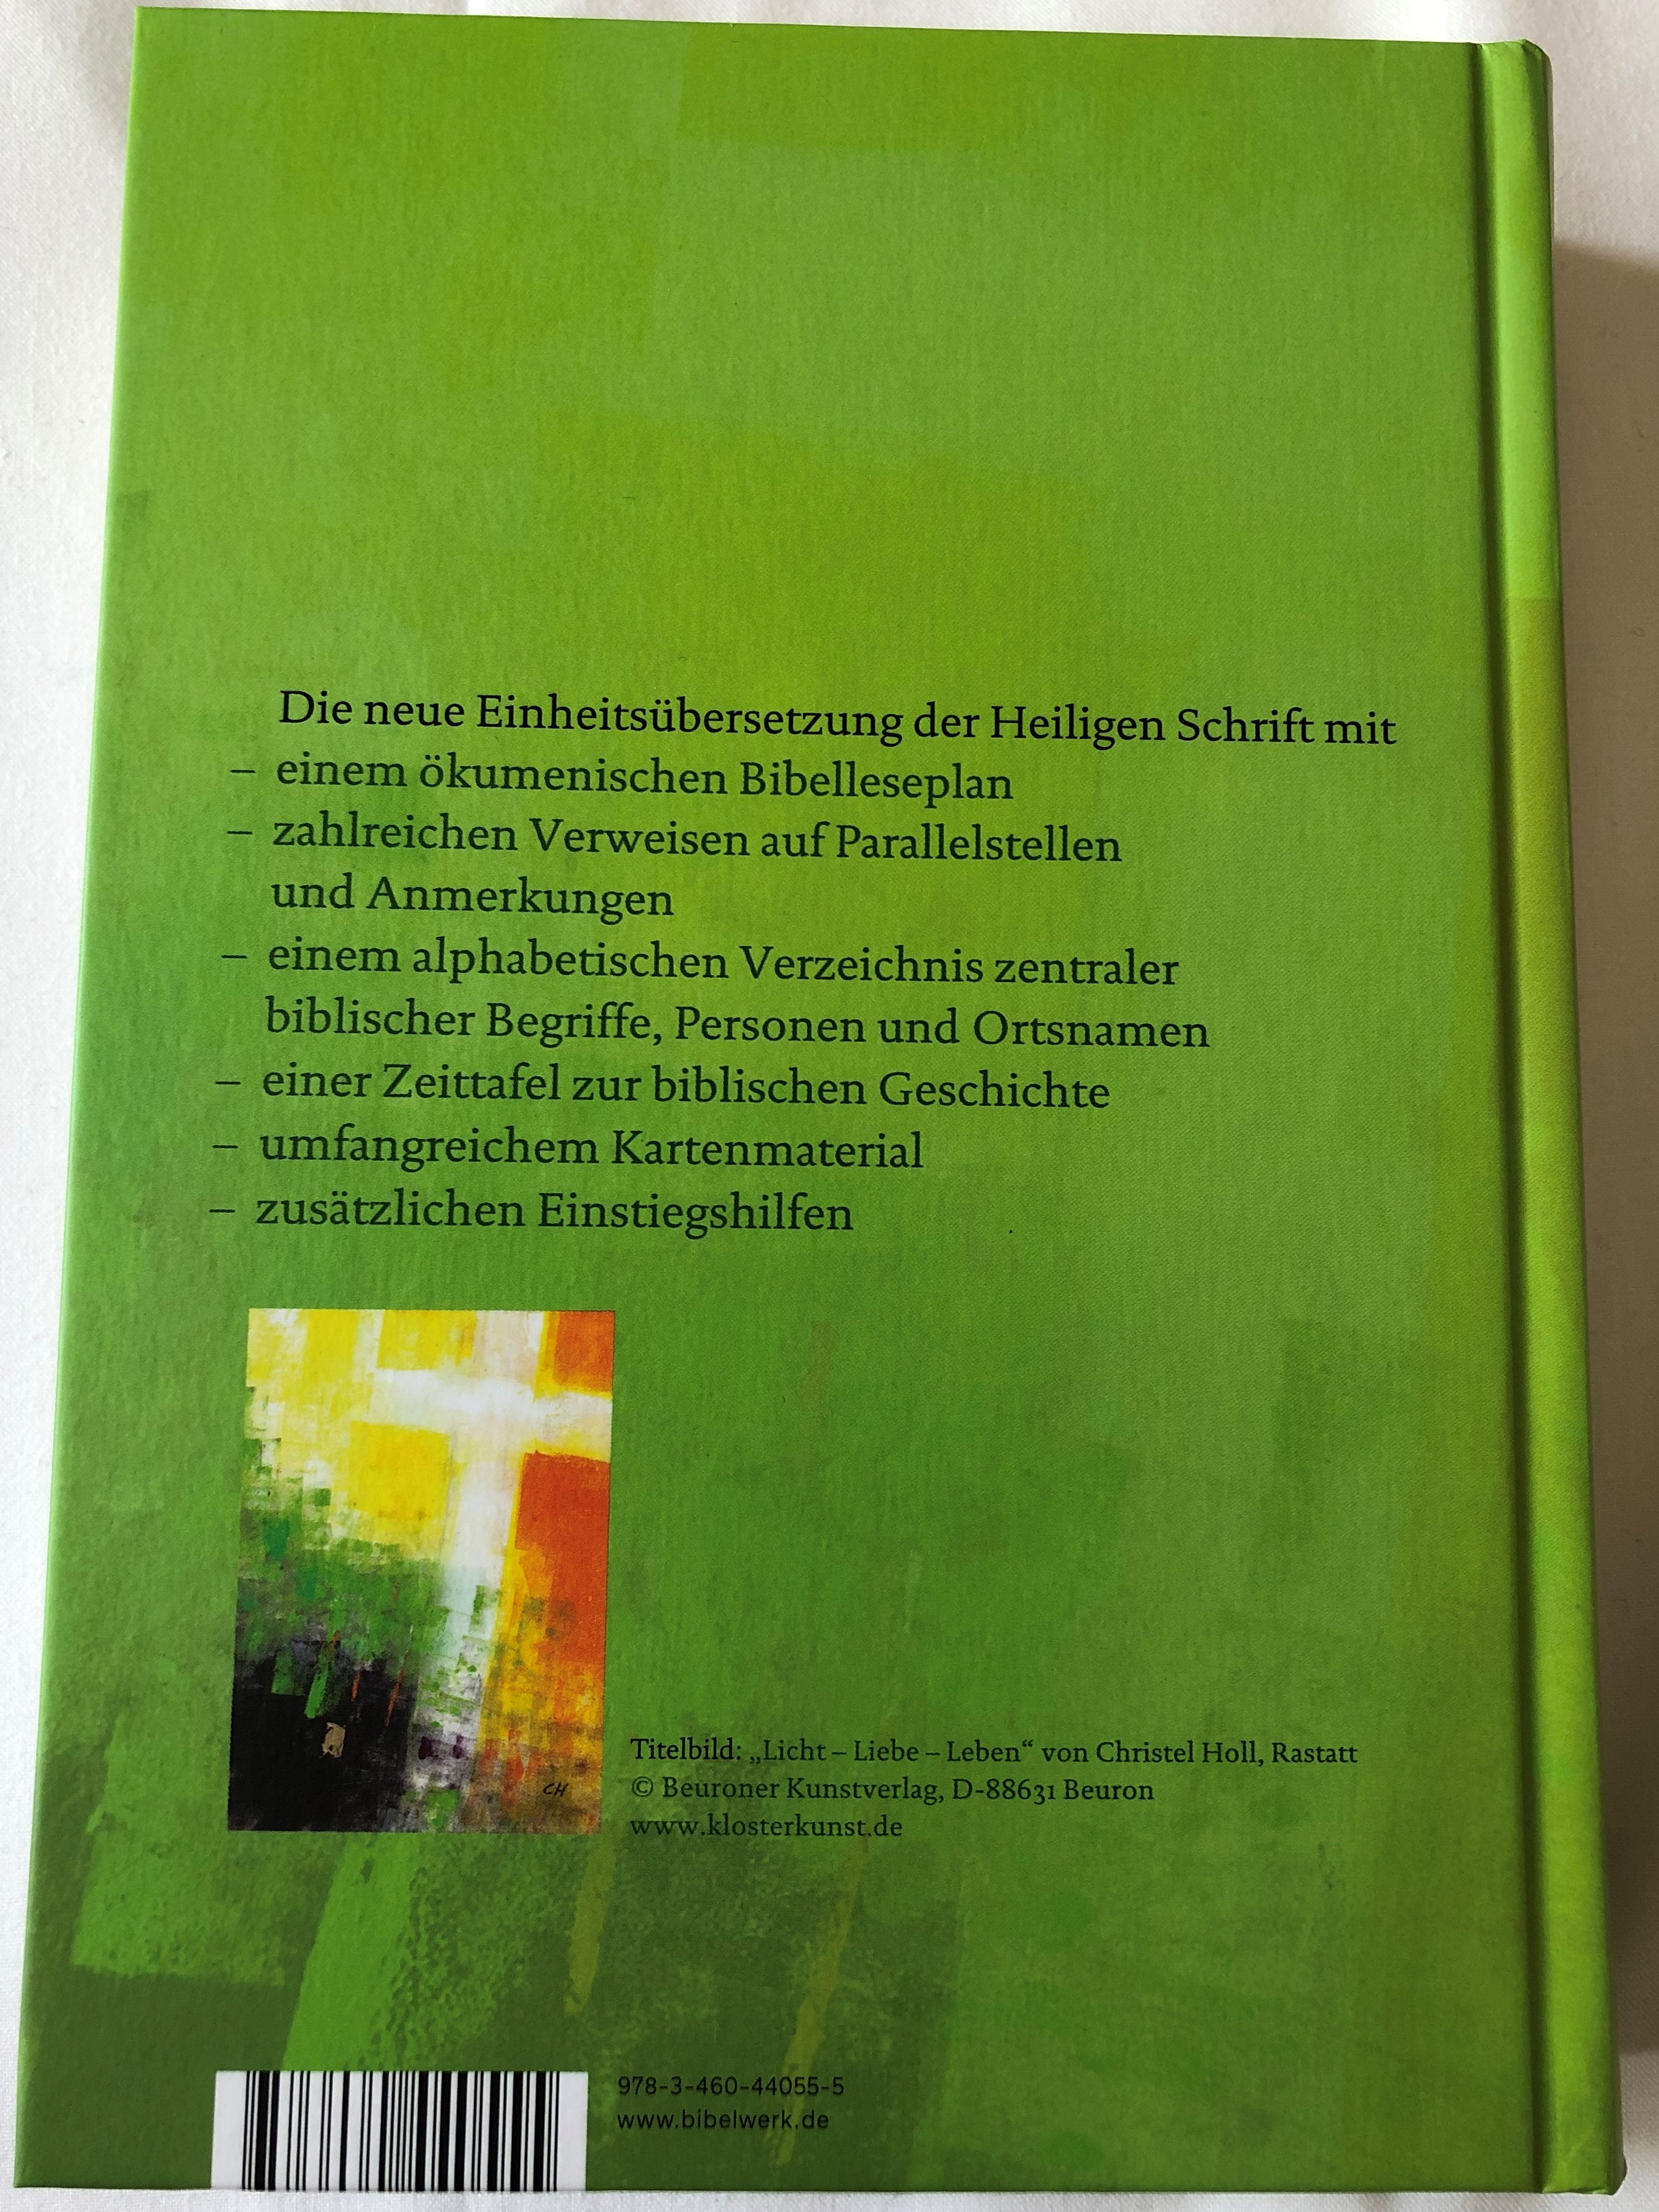 die-bibel-einheits-bersetzung-german-language-holy-bible-unitary-translation-contains-deuterocanonical-books-with-maps-notes-bible-history-timetable-ecumenical-reading-plan-hardcover-2018-kbw-21-.jpg